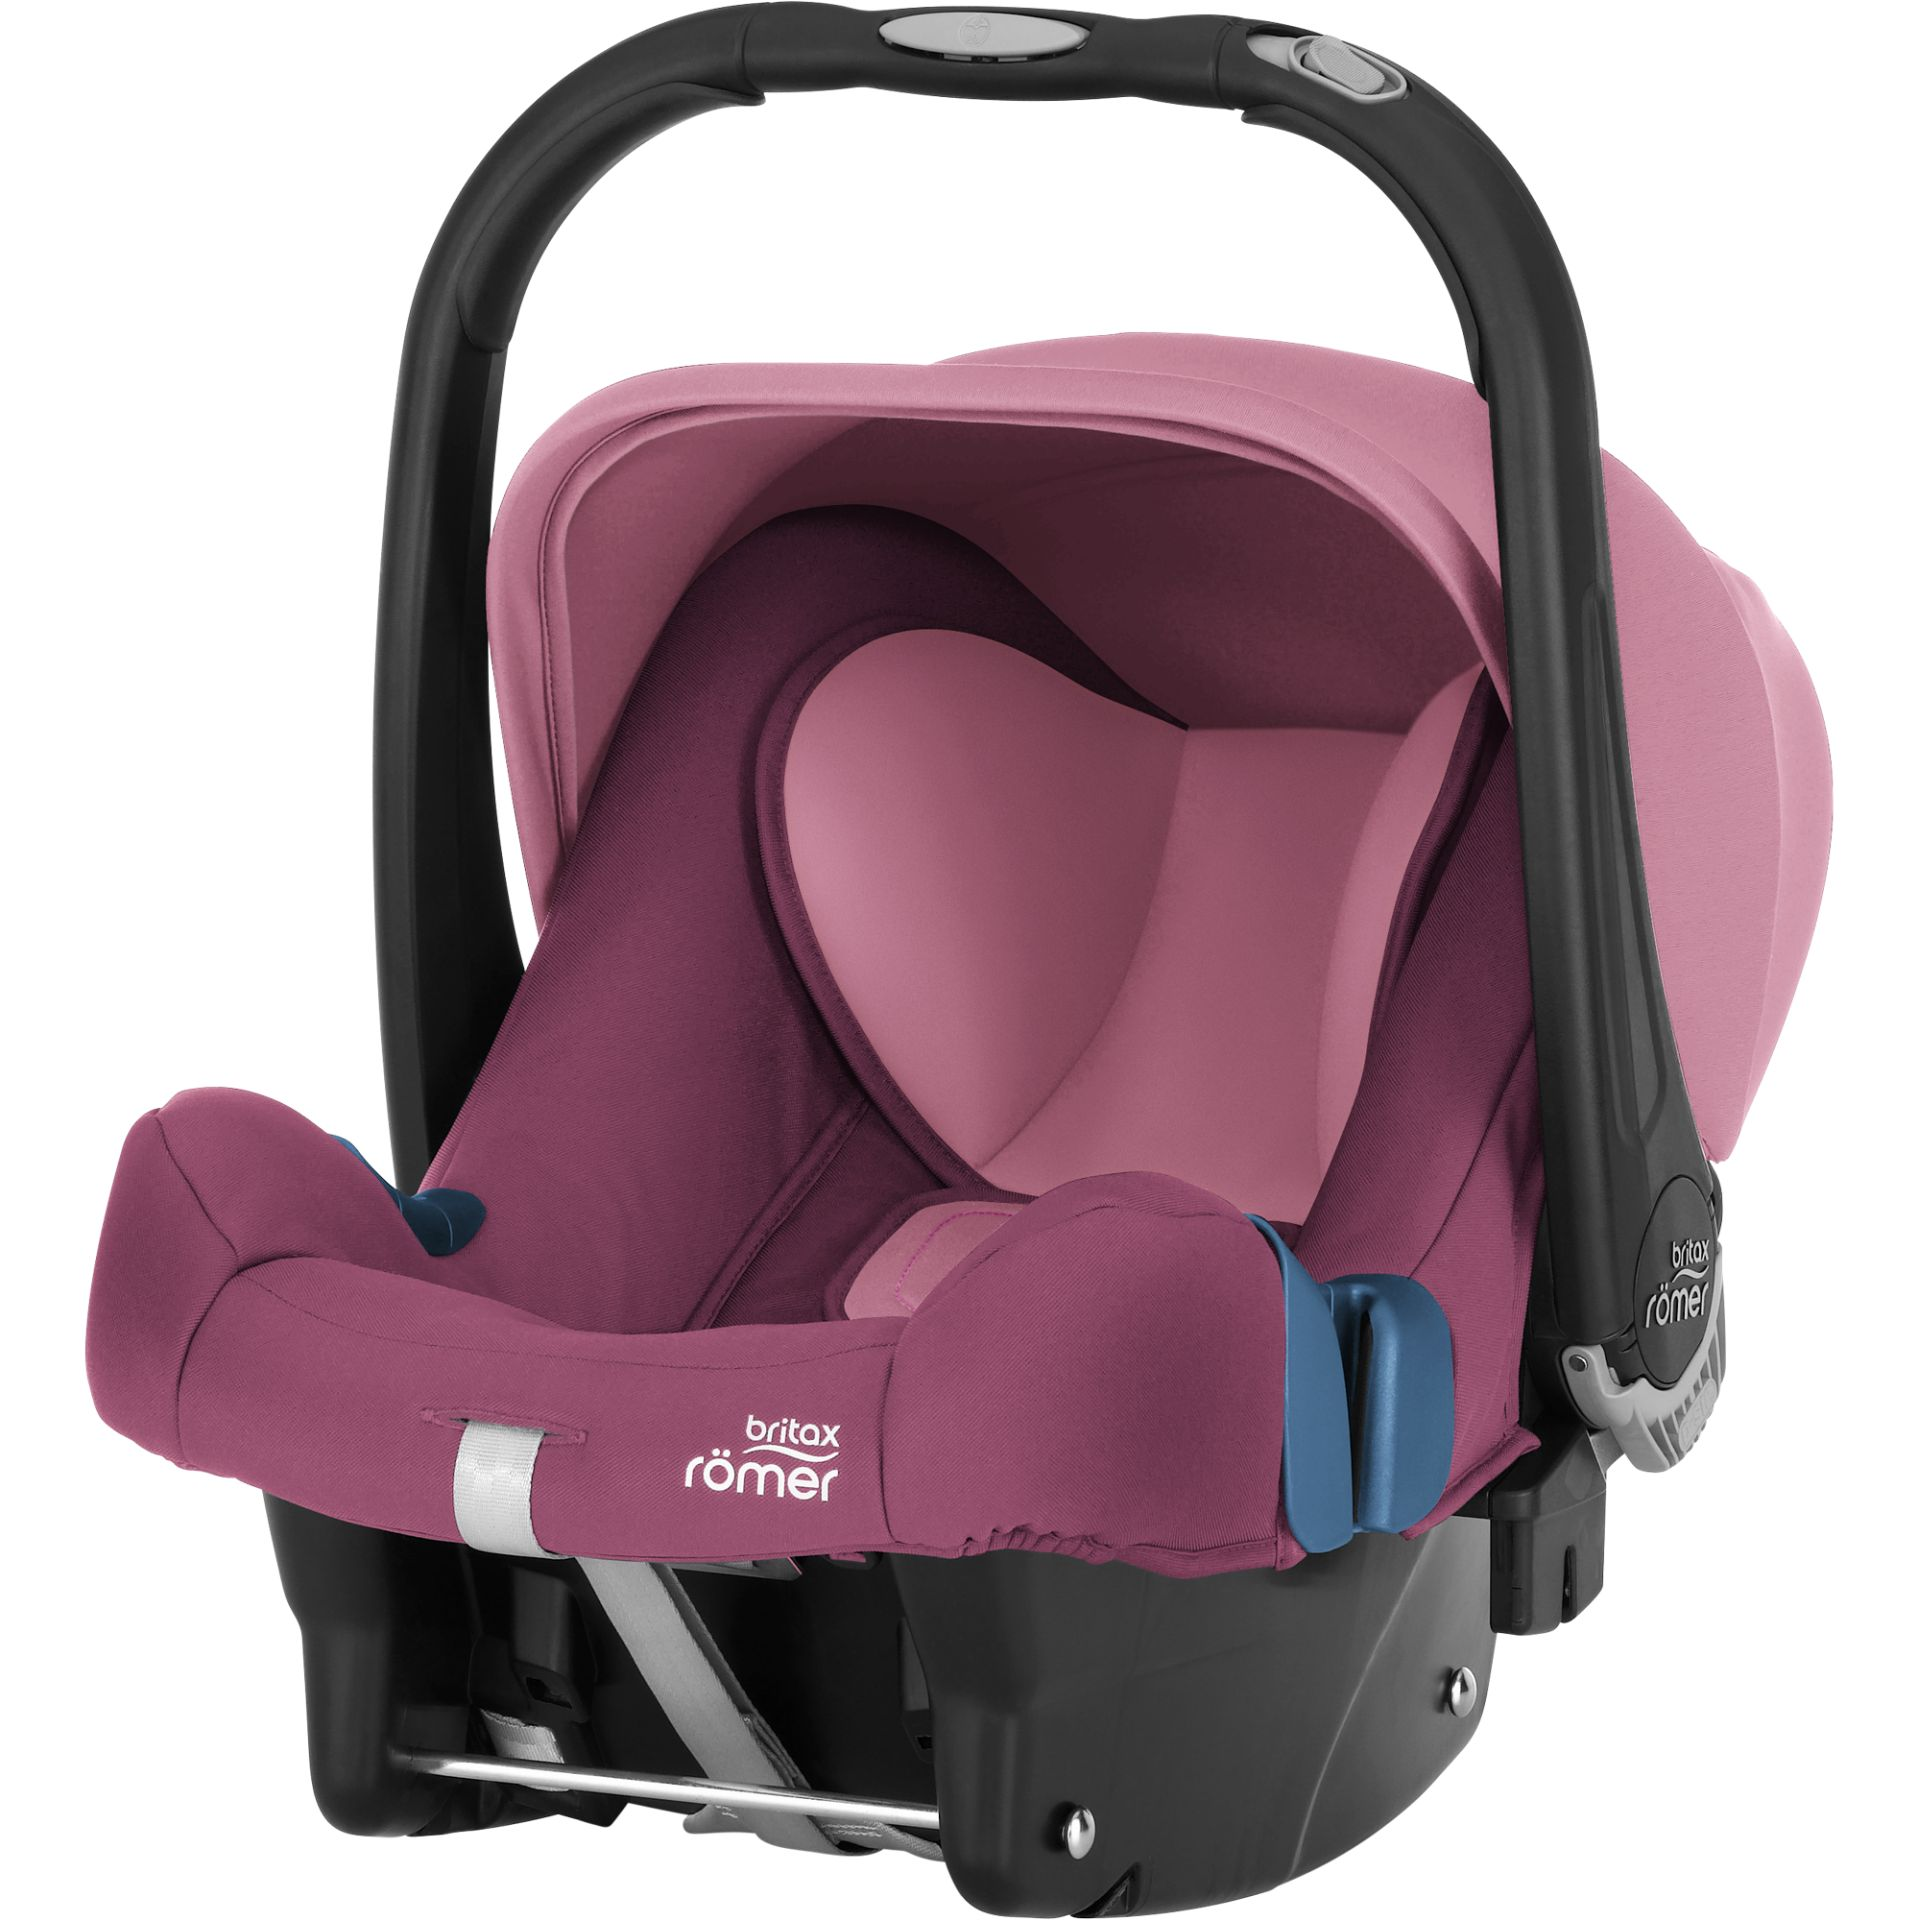 si ge auto cosy baby safe plus shr ii par britax r mer 2018 wine rose acheter sur kidsroom. Black Bedroom Furniture Sets. Home Design Ideas